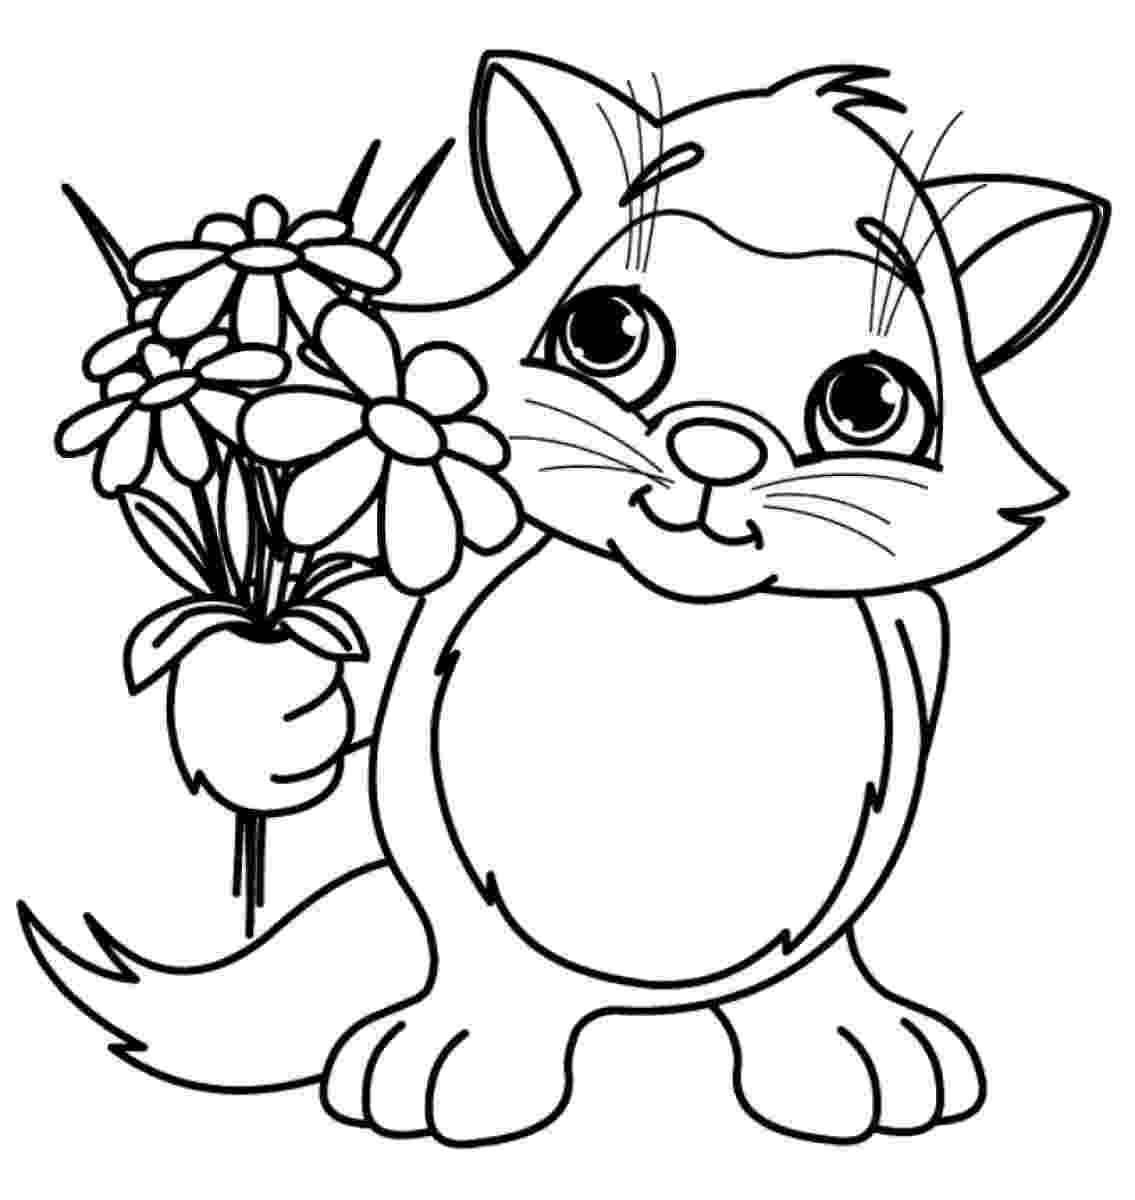 spring flowers coloring pages to print spring flowers coloring page free printable coloring pages print flowers pages spring coloring to